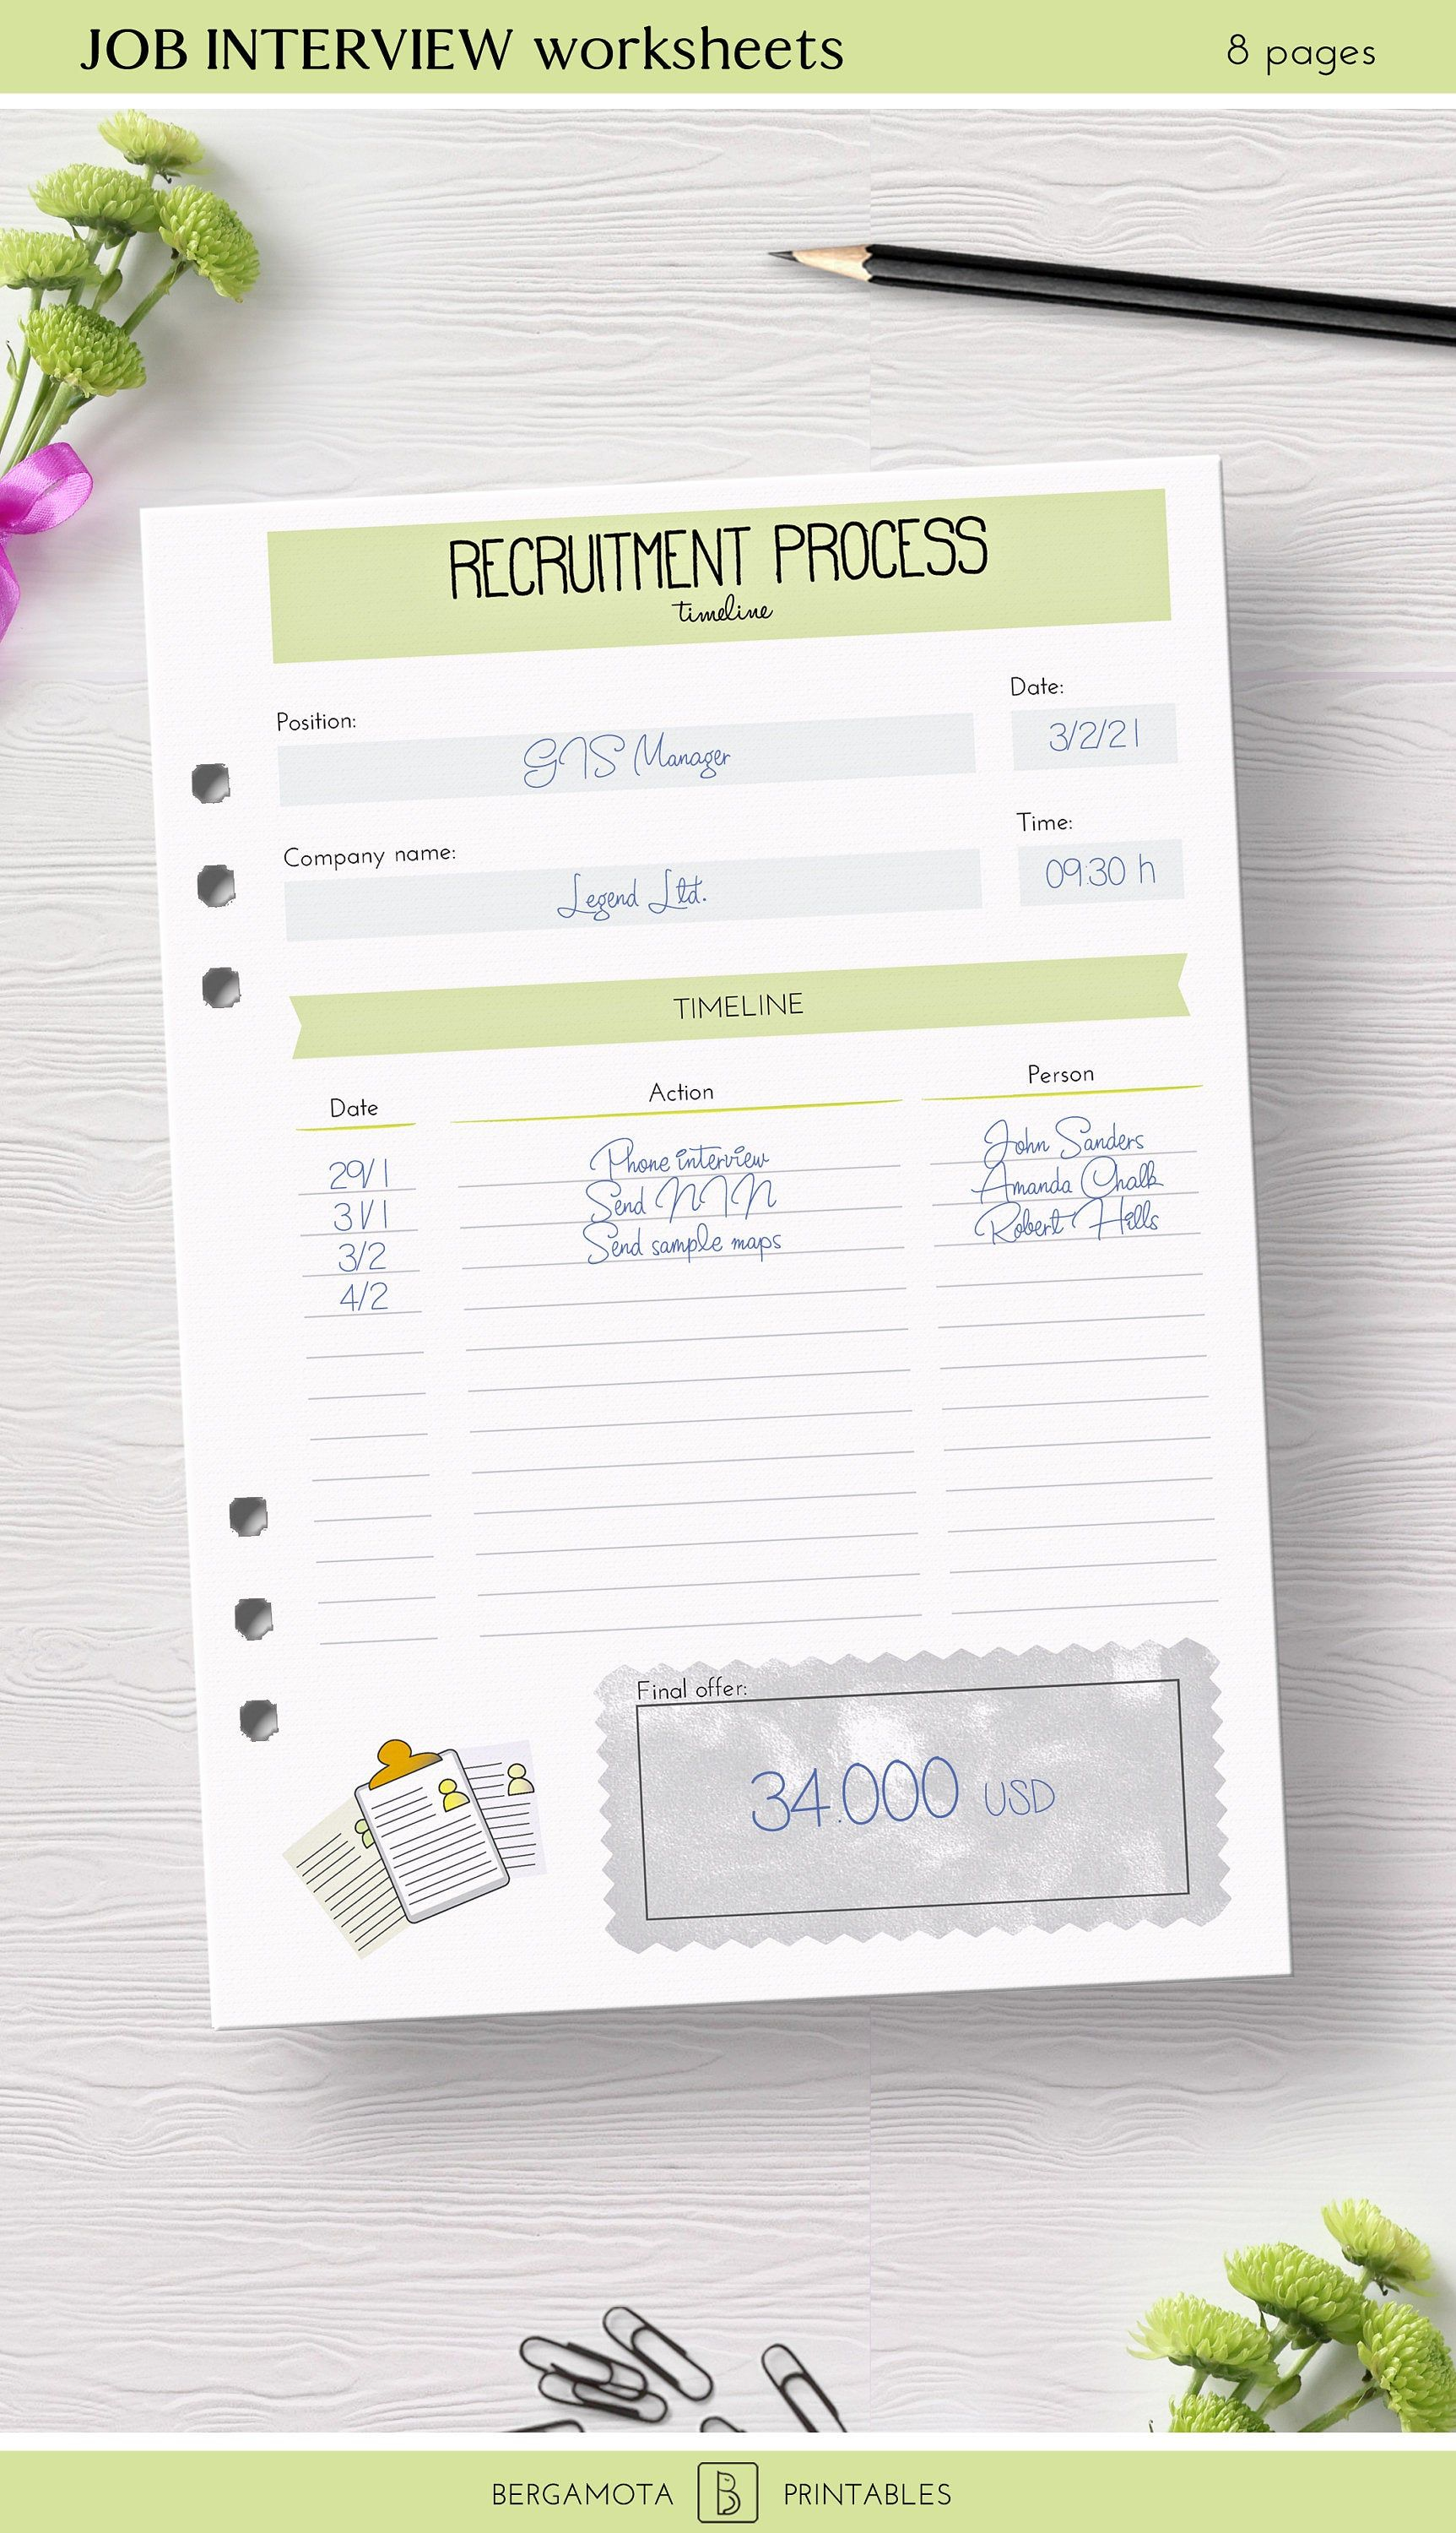 Job Interview Worksheets 8 Printable Planner Pages A5